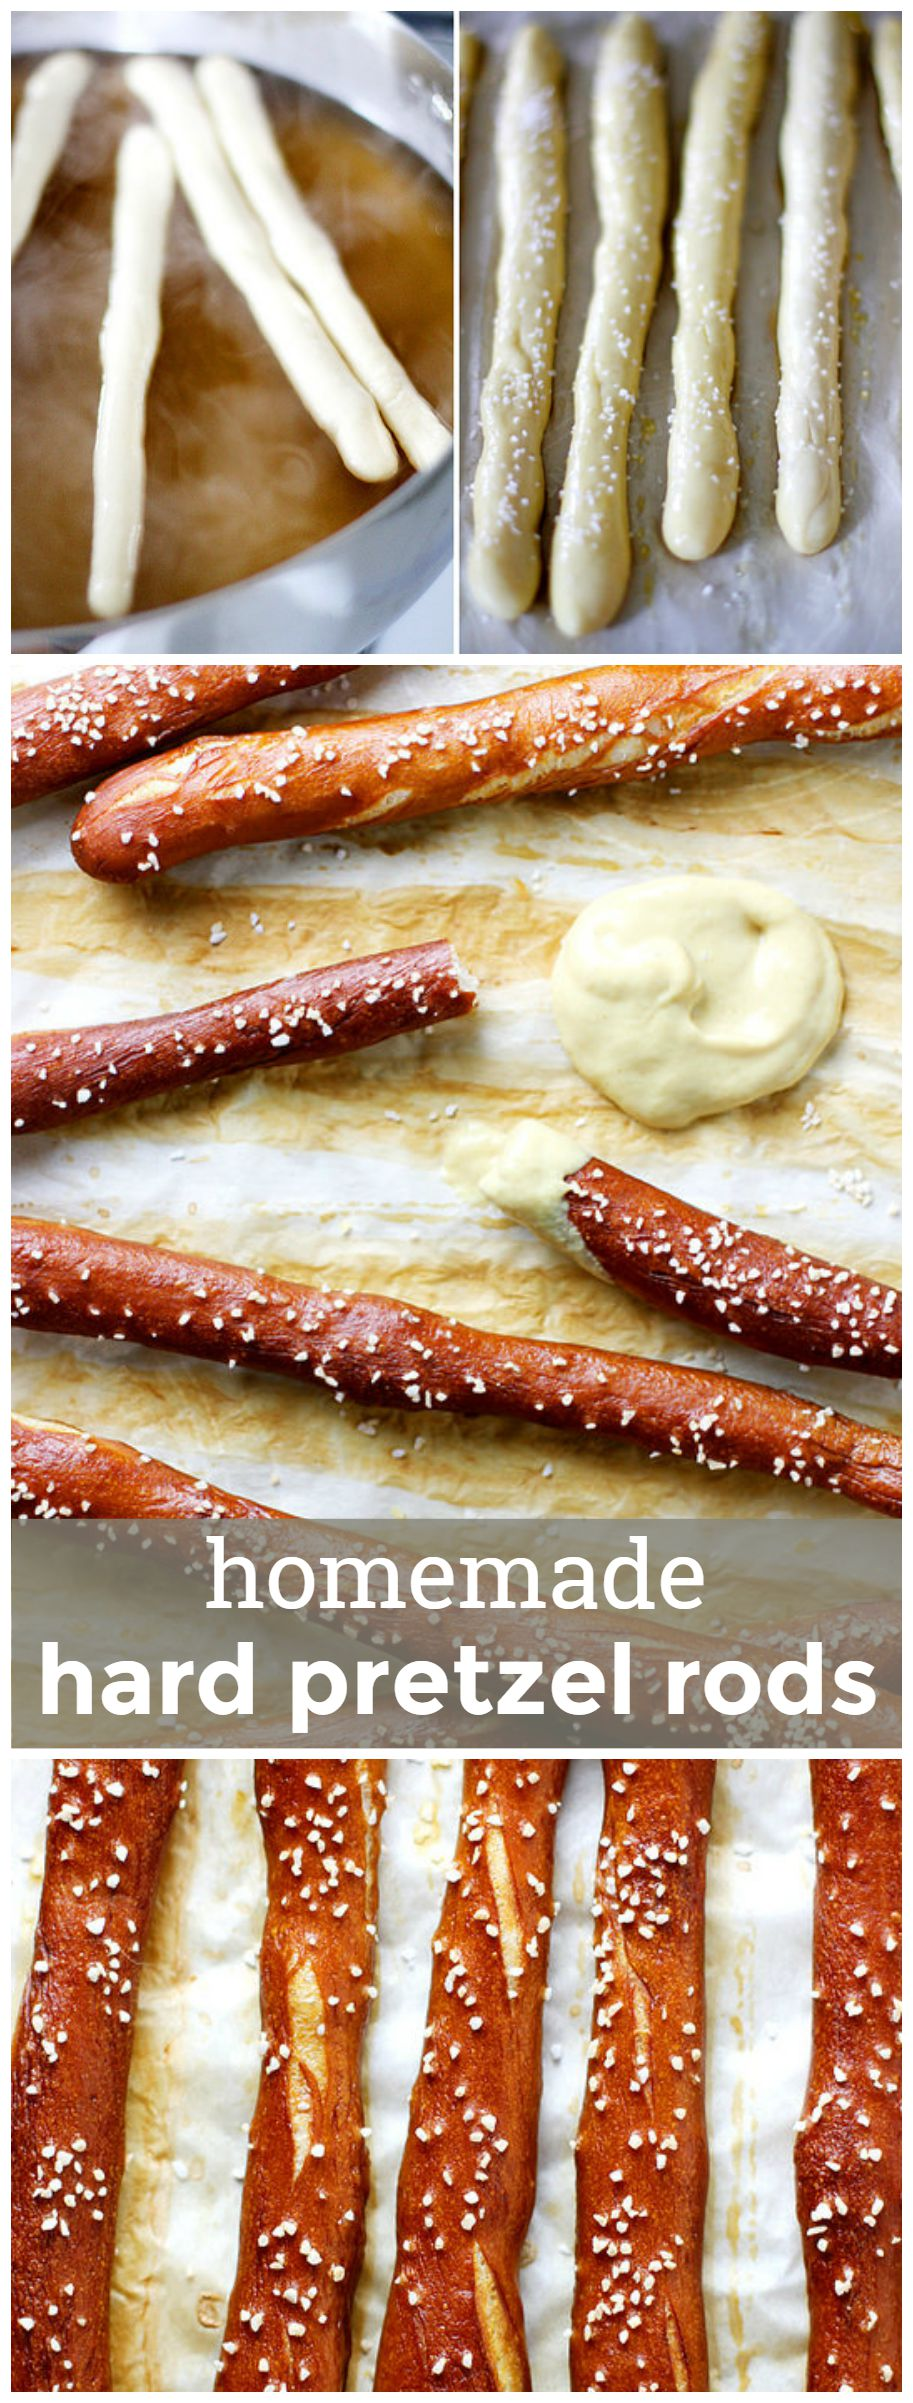 Homemade Hard Pretzel Rods -- Make your own salty snacks with my go-to recipe! girlversusdough.com @girlversusdough